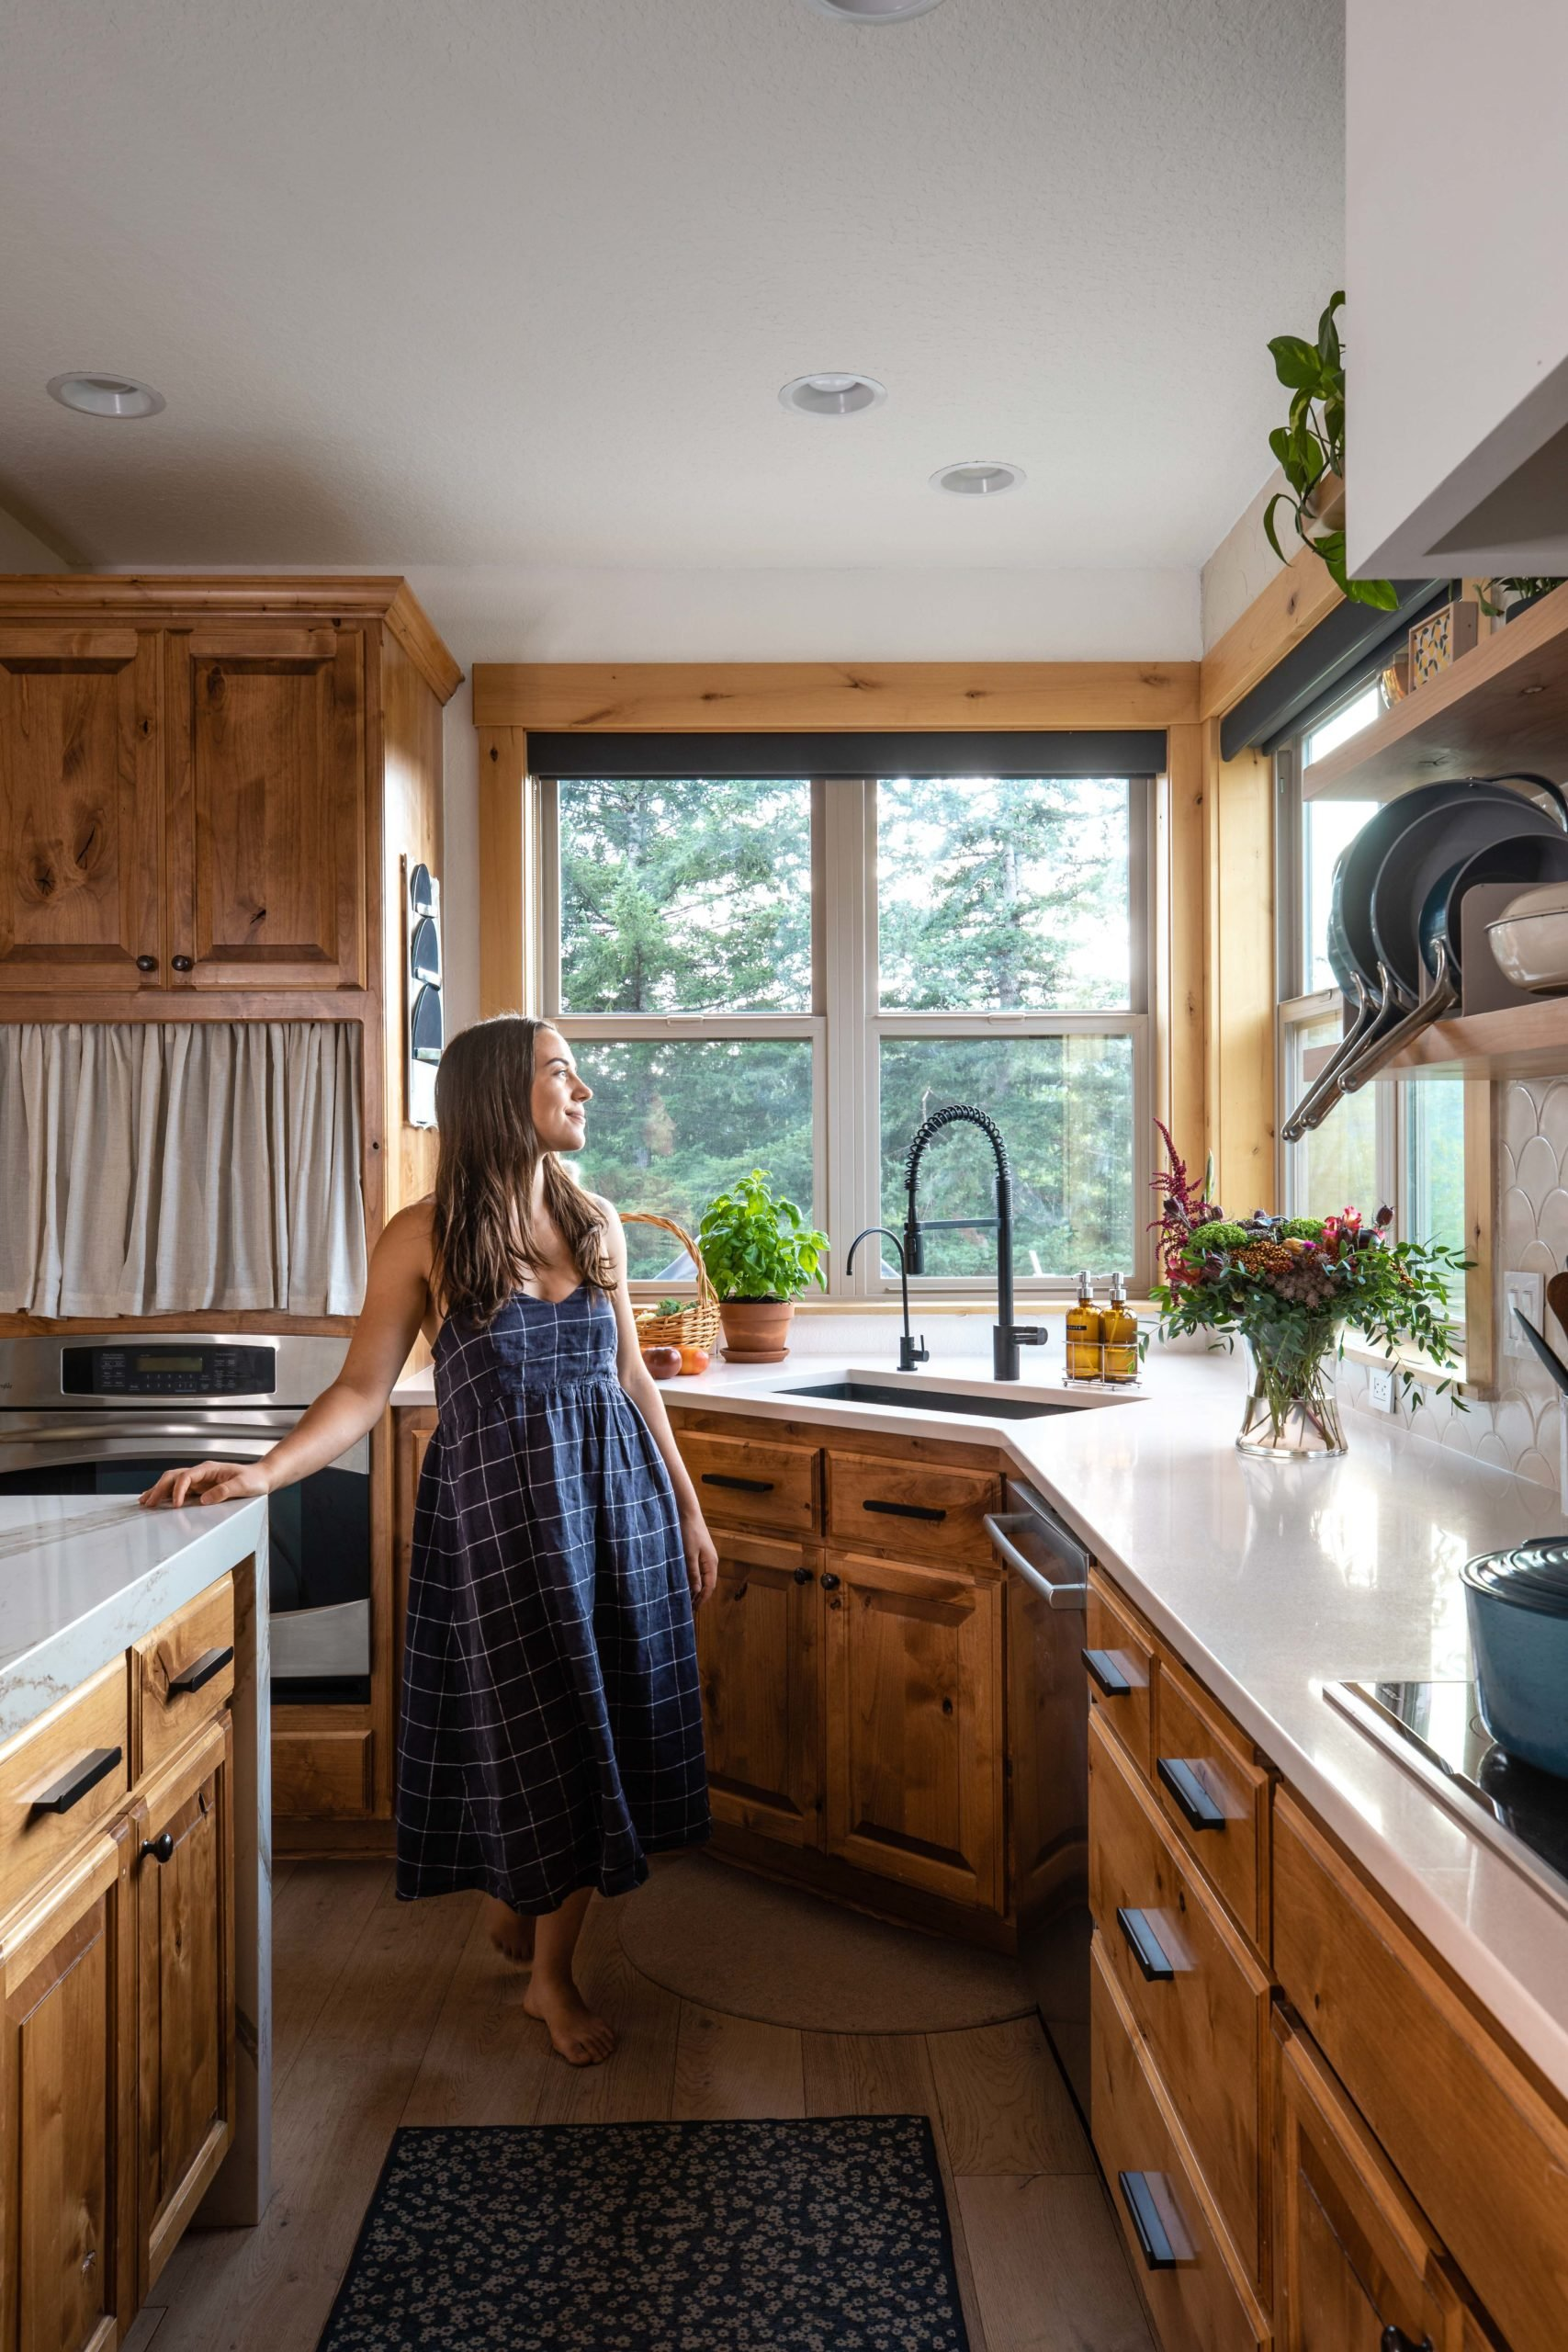 Caitlin standing in the kitchen looking out at a window full of pine trees